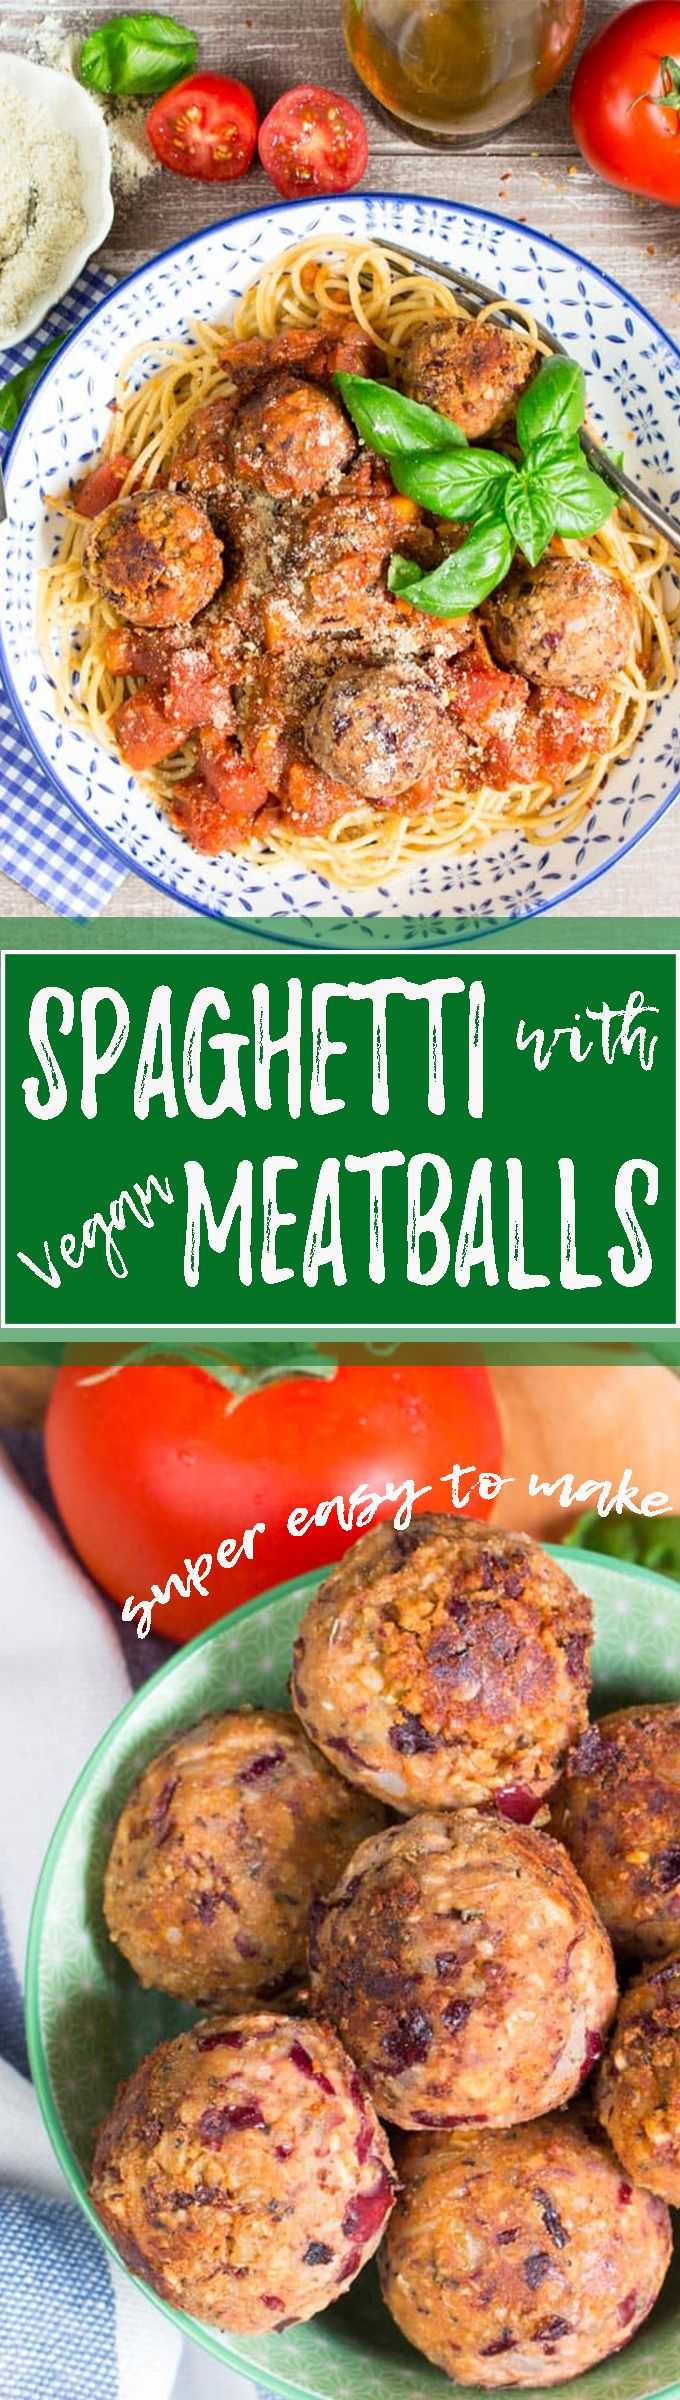 These spaghetti with vegan meatballs are one of the best vegan pasta dishes I've ever had!! And you won't believe how easy the recipe is! It only takes 30 minutes to make. <3   veganheaven.org